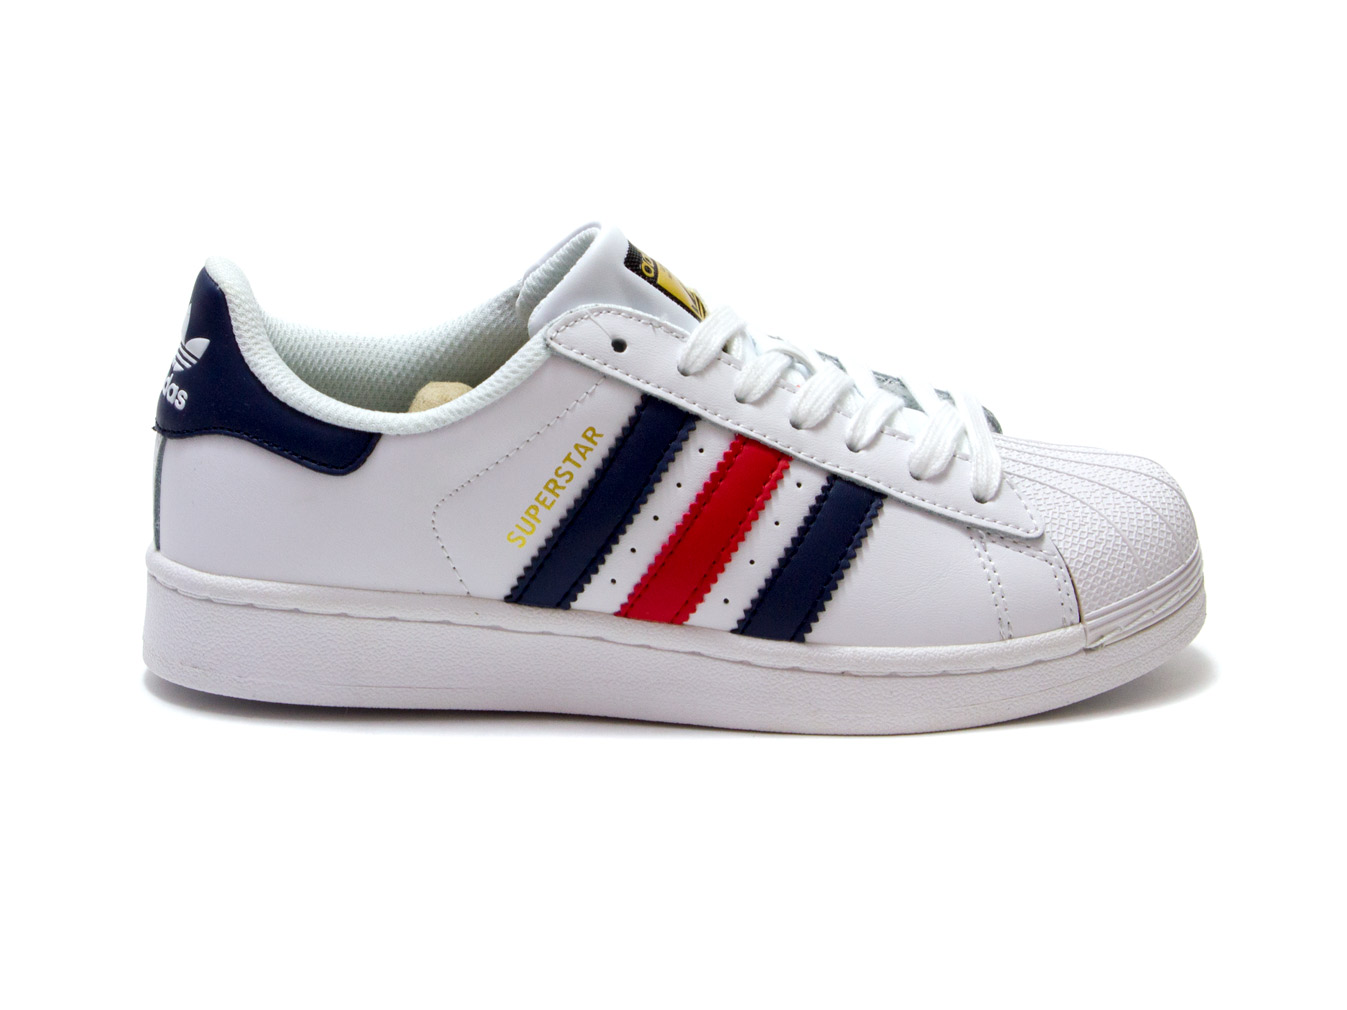 Изображение кроссовок adidas-superstar-ru-2